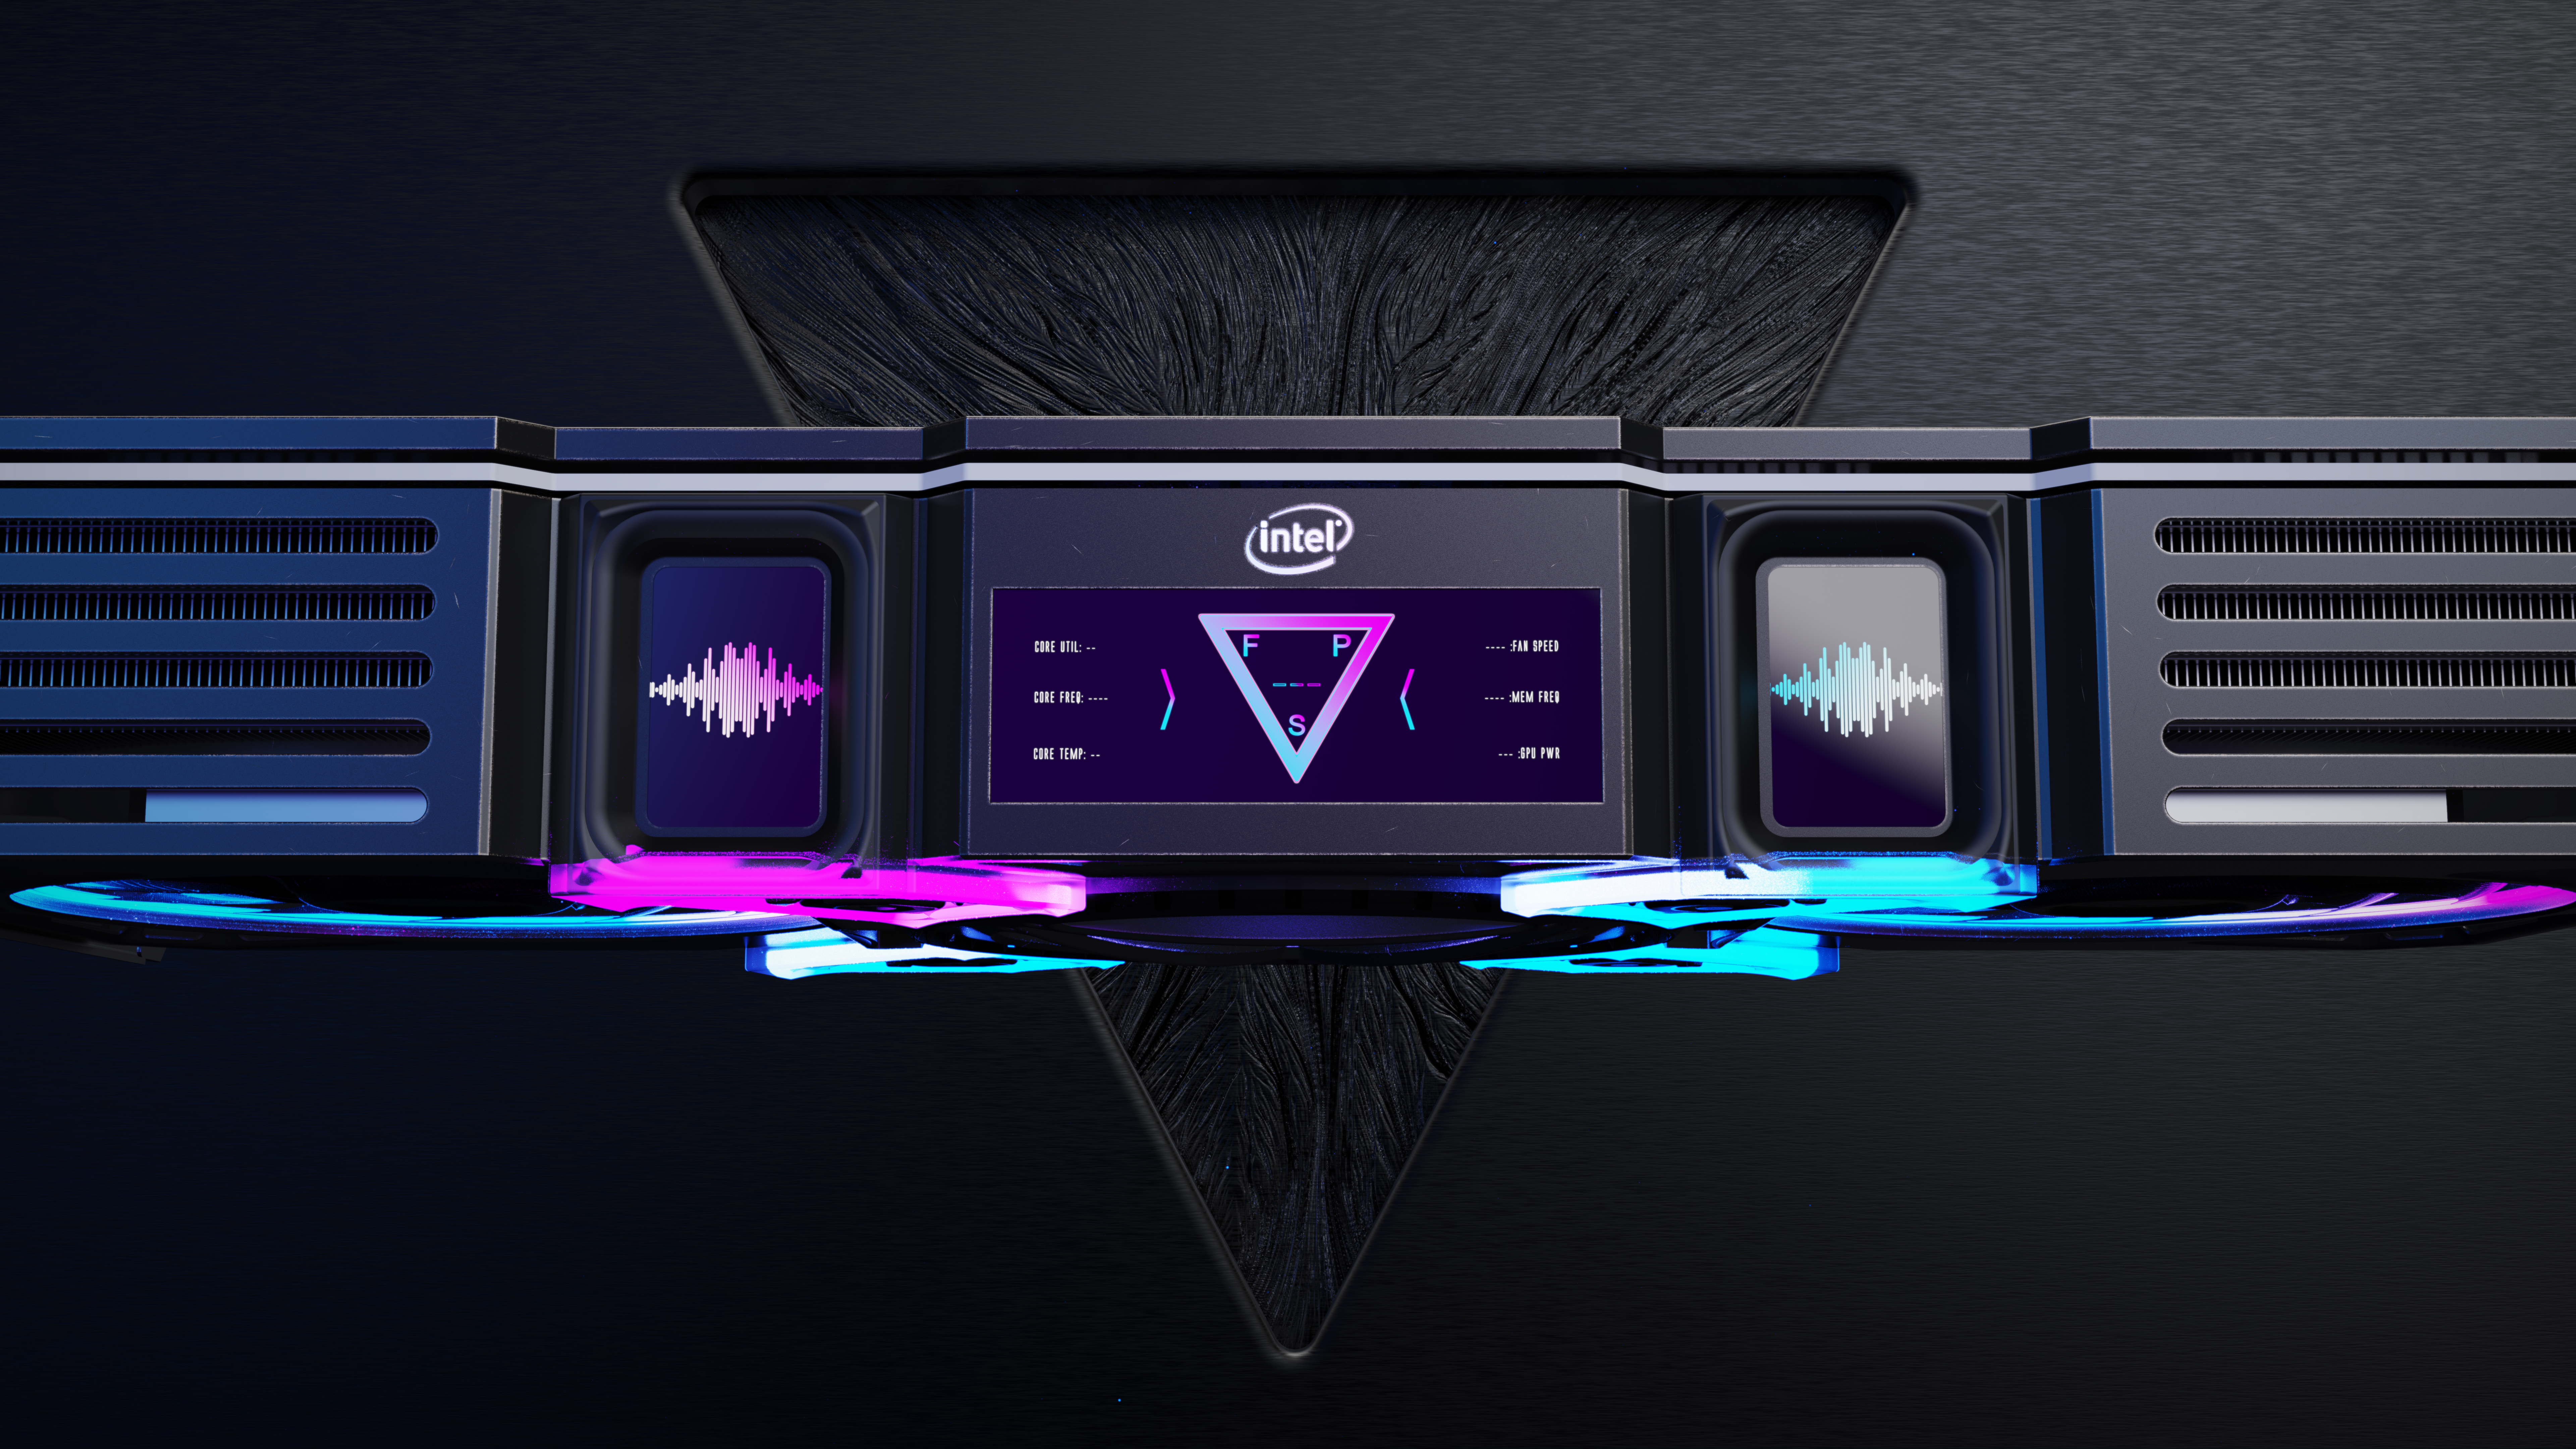 While we're stuck in 2019, Intel is out here envisioning the GPUs of